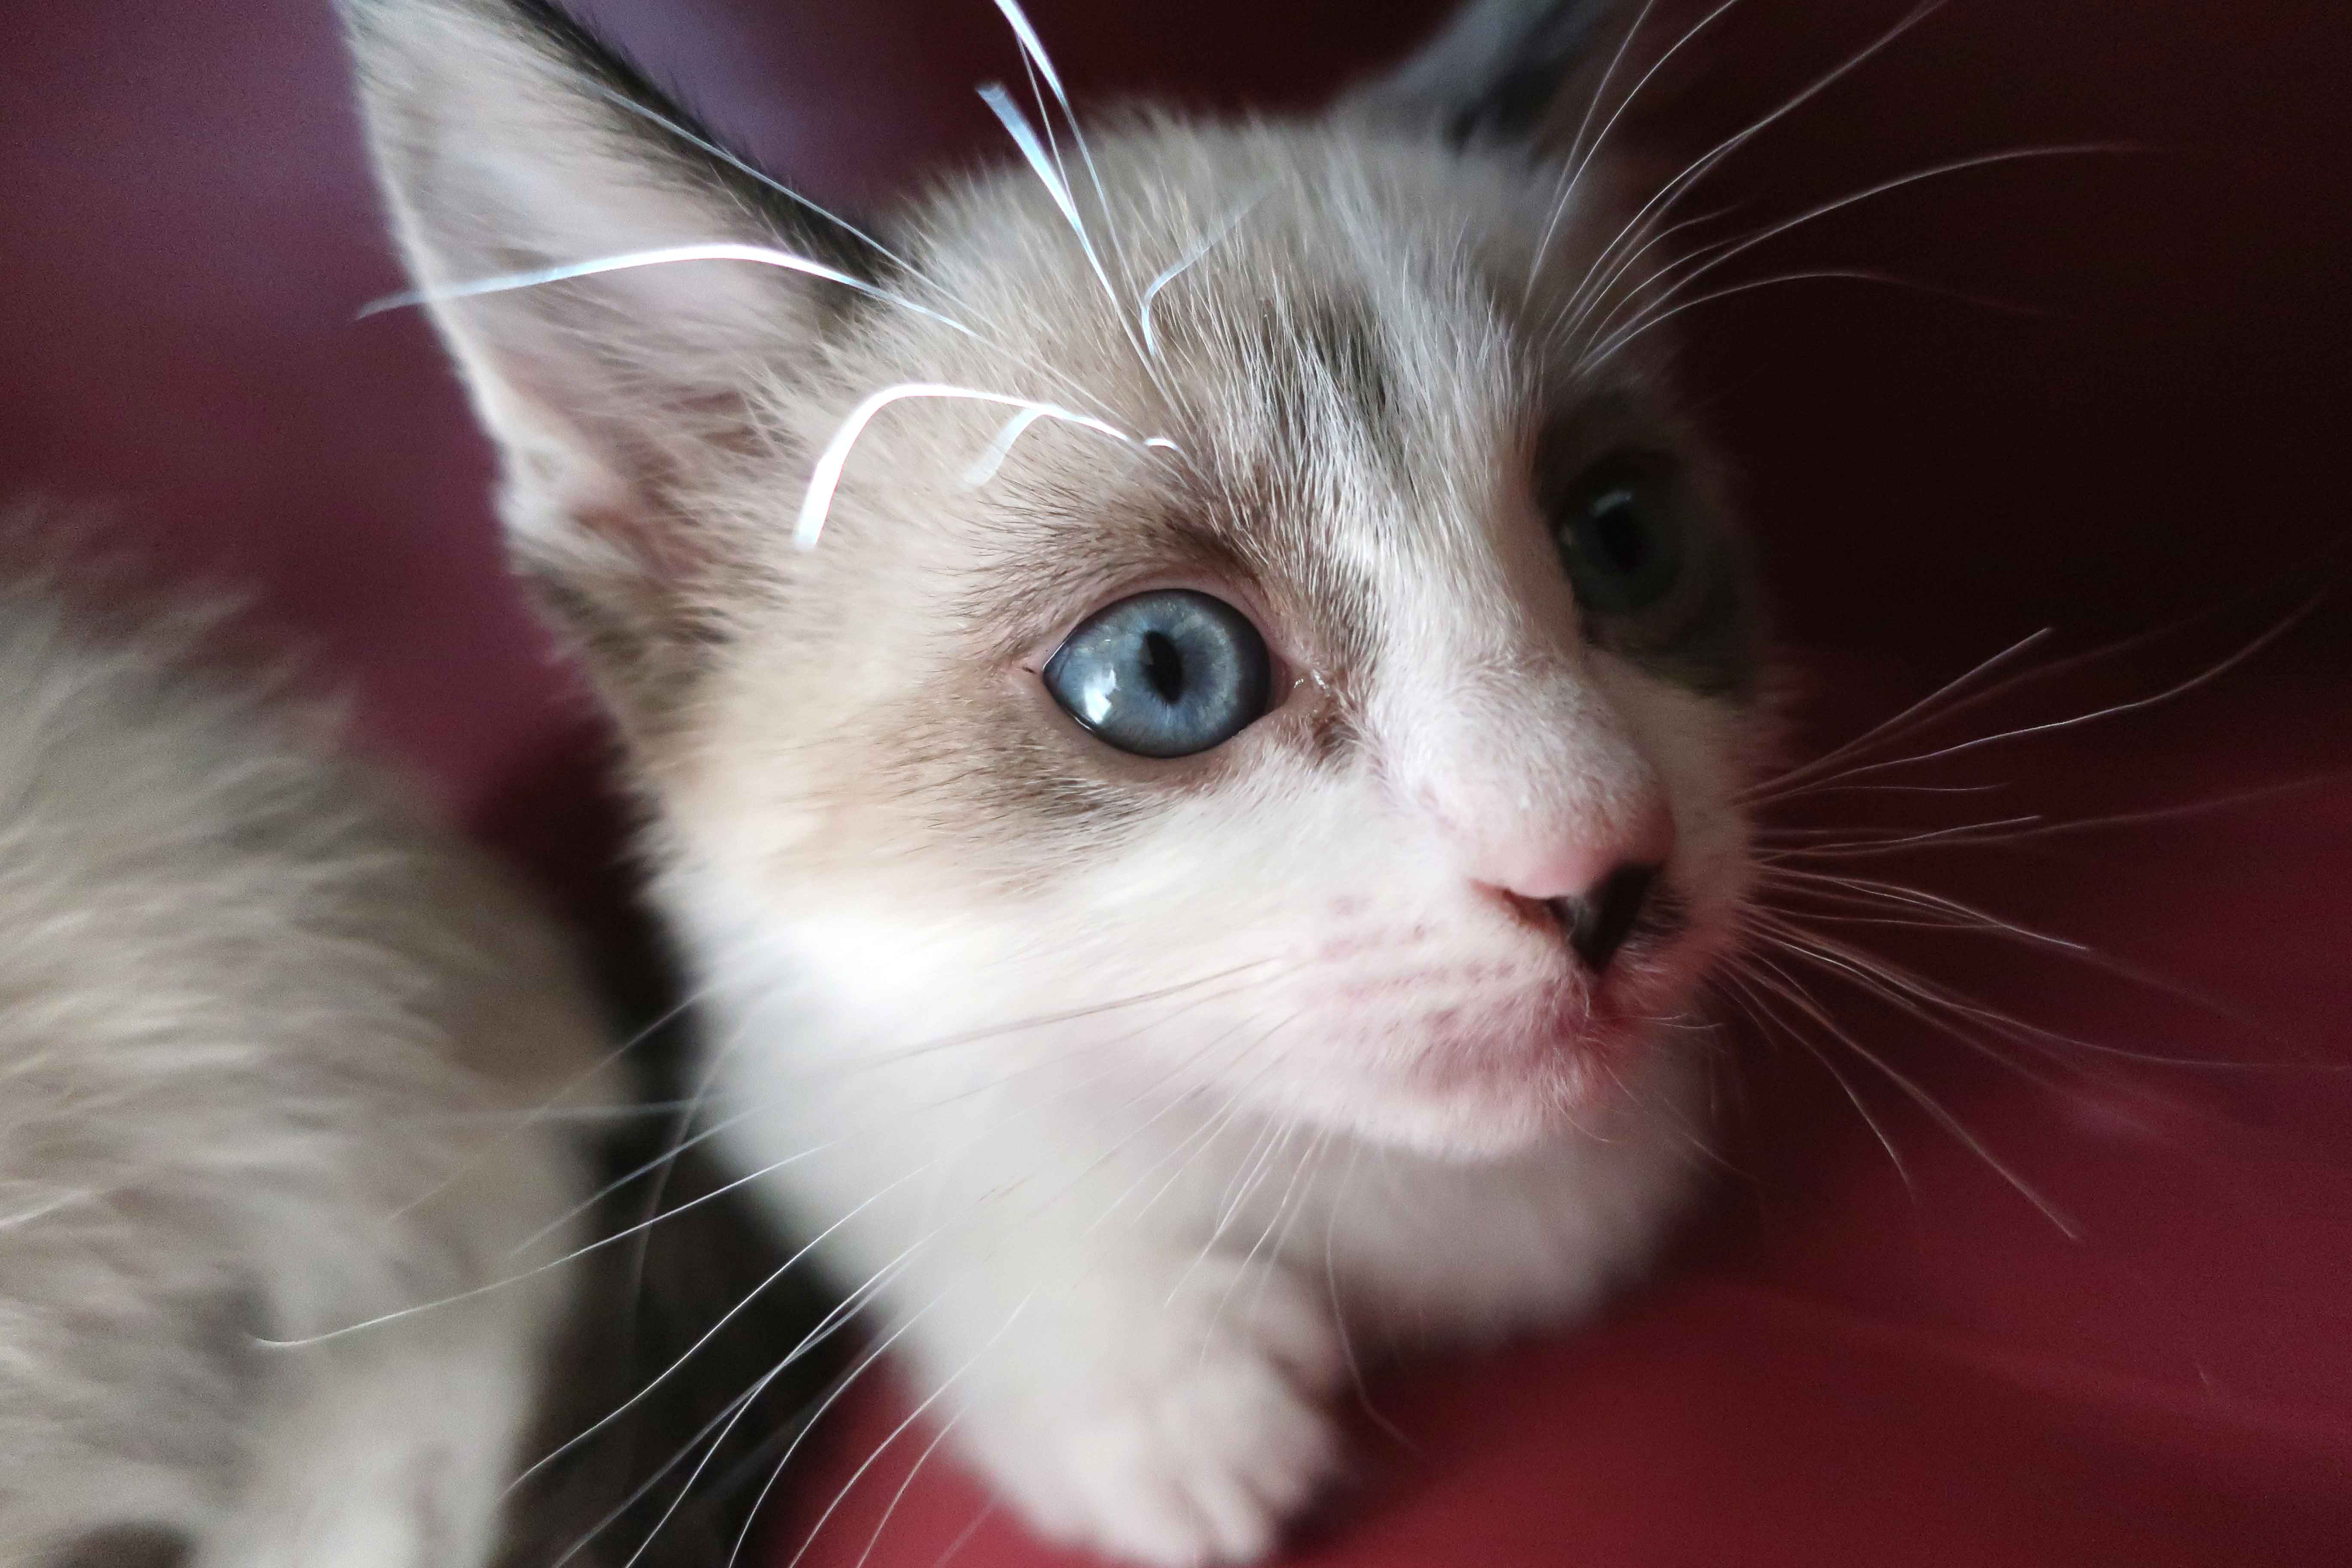 a kitten peers up at the camera